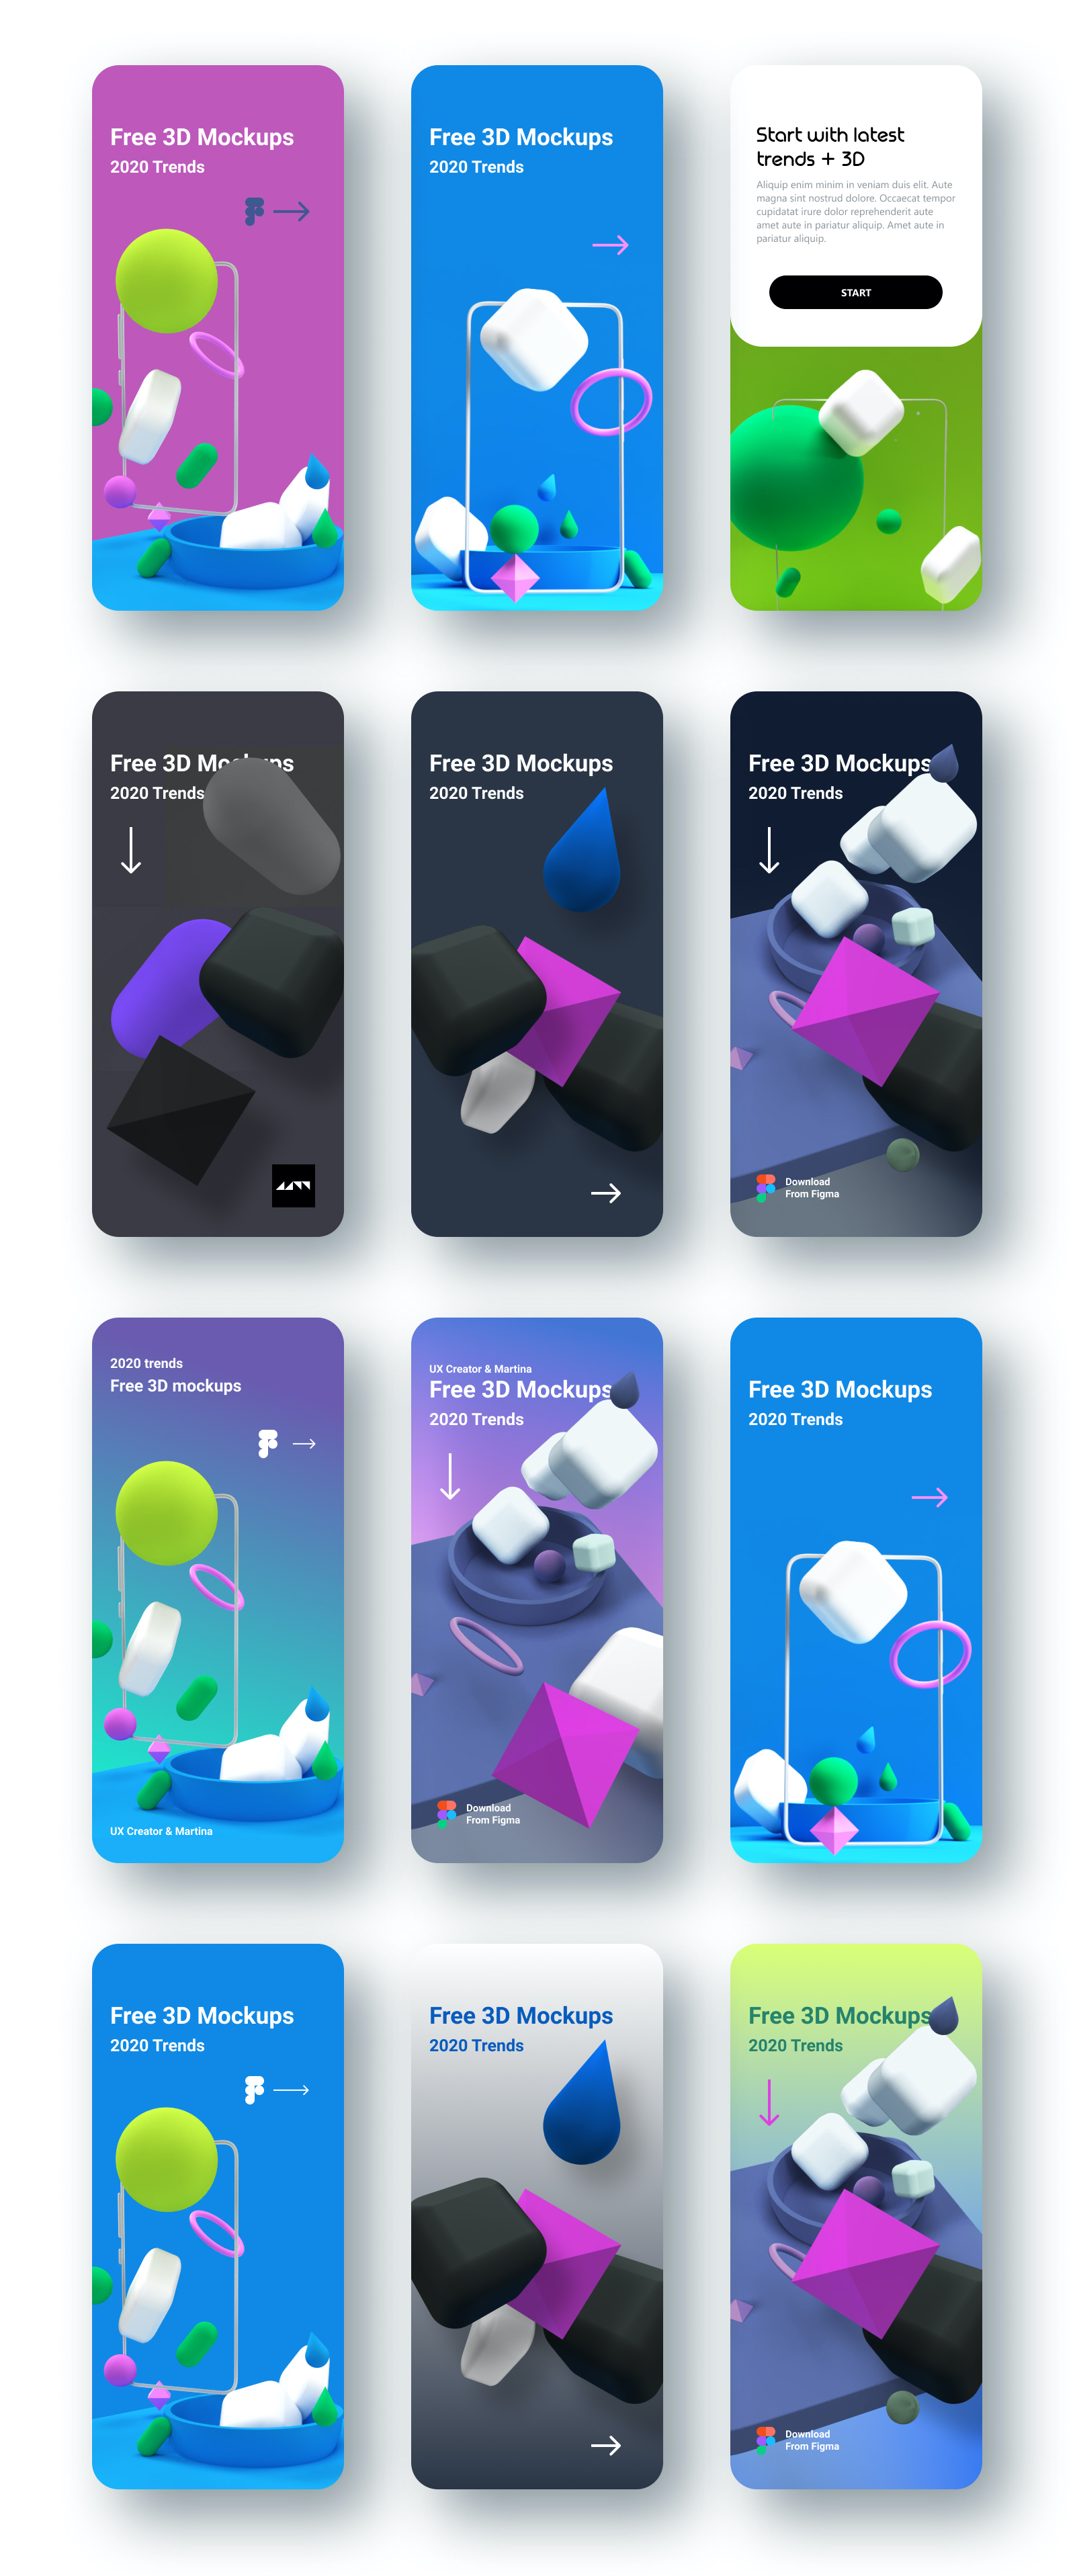 3D Models App Mockups - 3D models are currently a popular trend in web design. 3D illustrations are very often used in the design of landing pages for apps or websites. Consists of 26 shapes, 22 compositions, and 12 mockups for demonstration purposes.